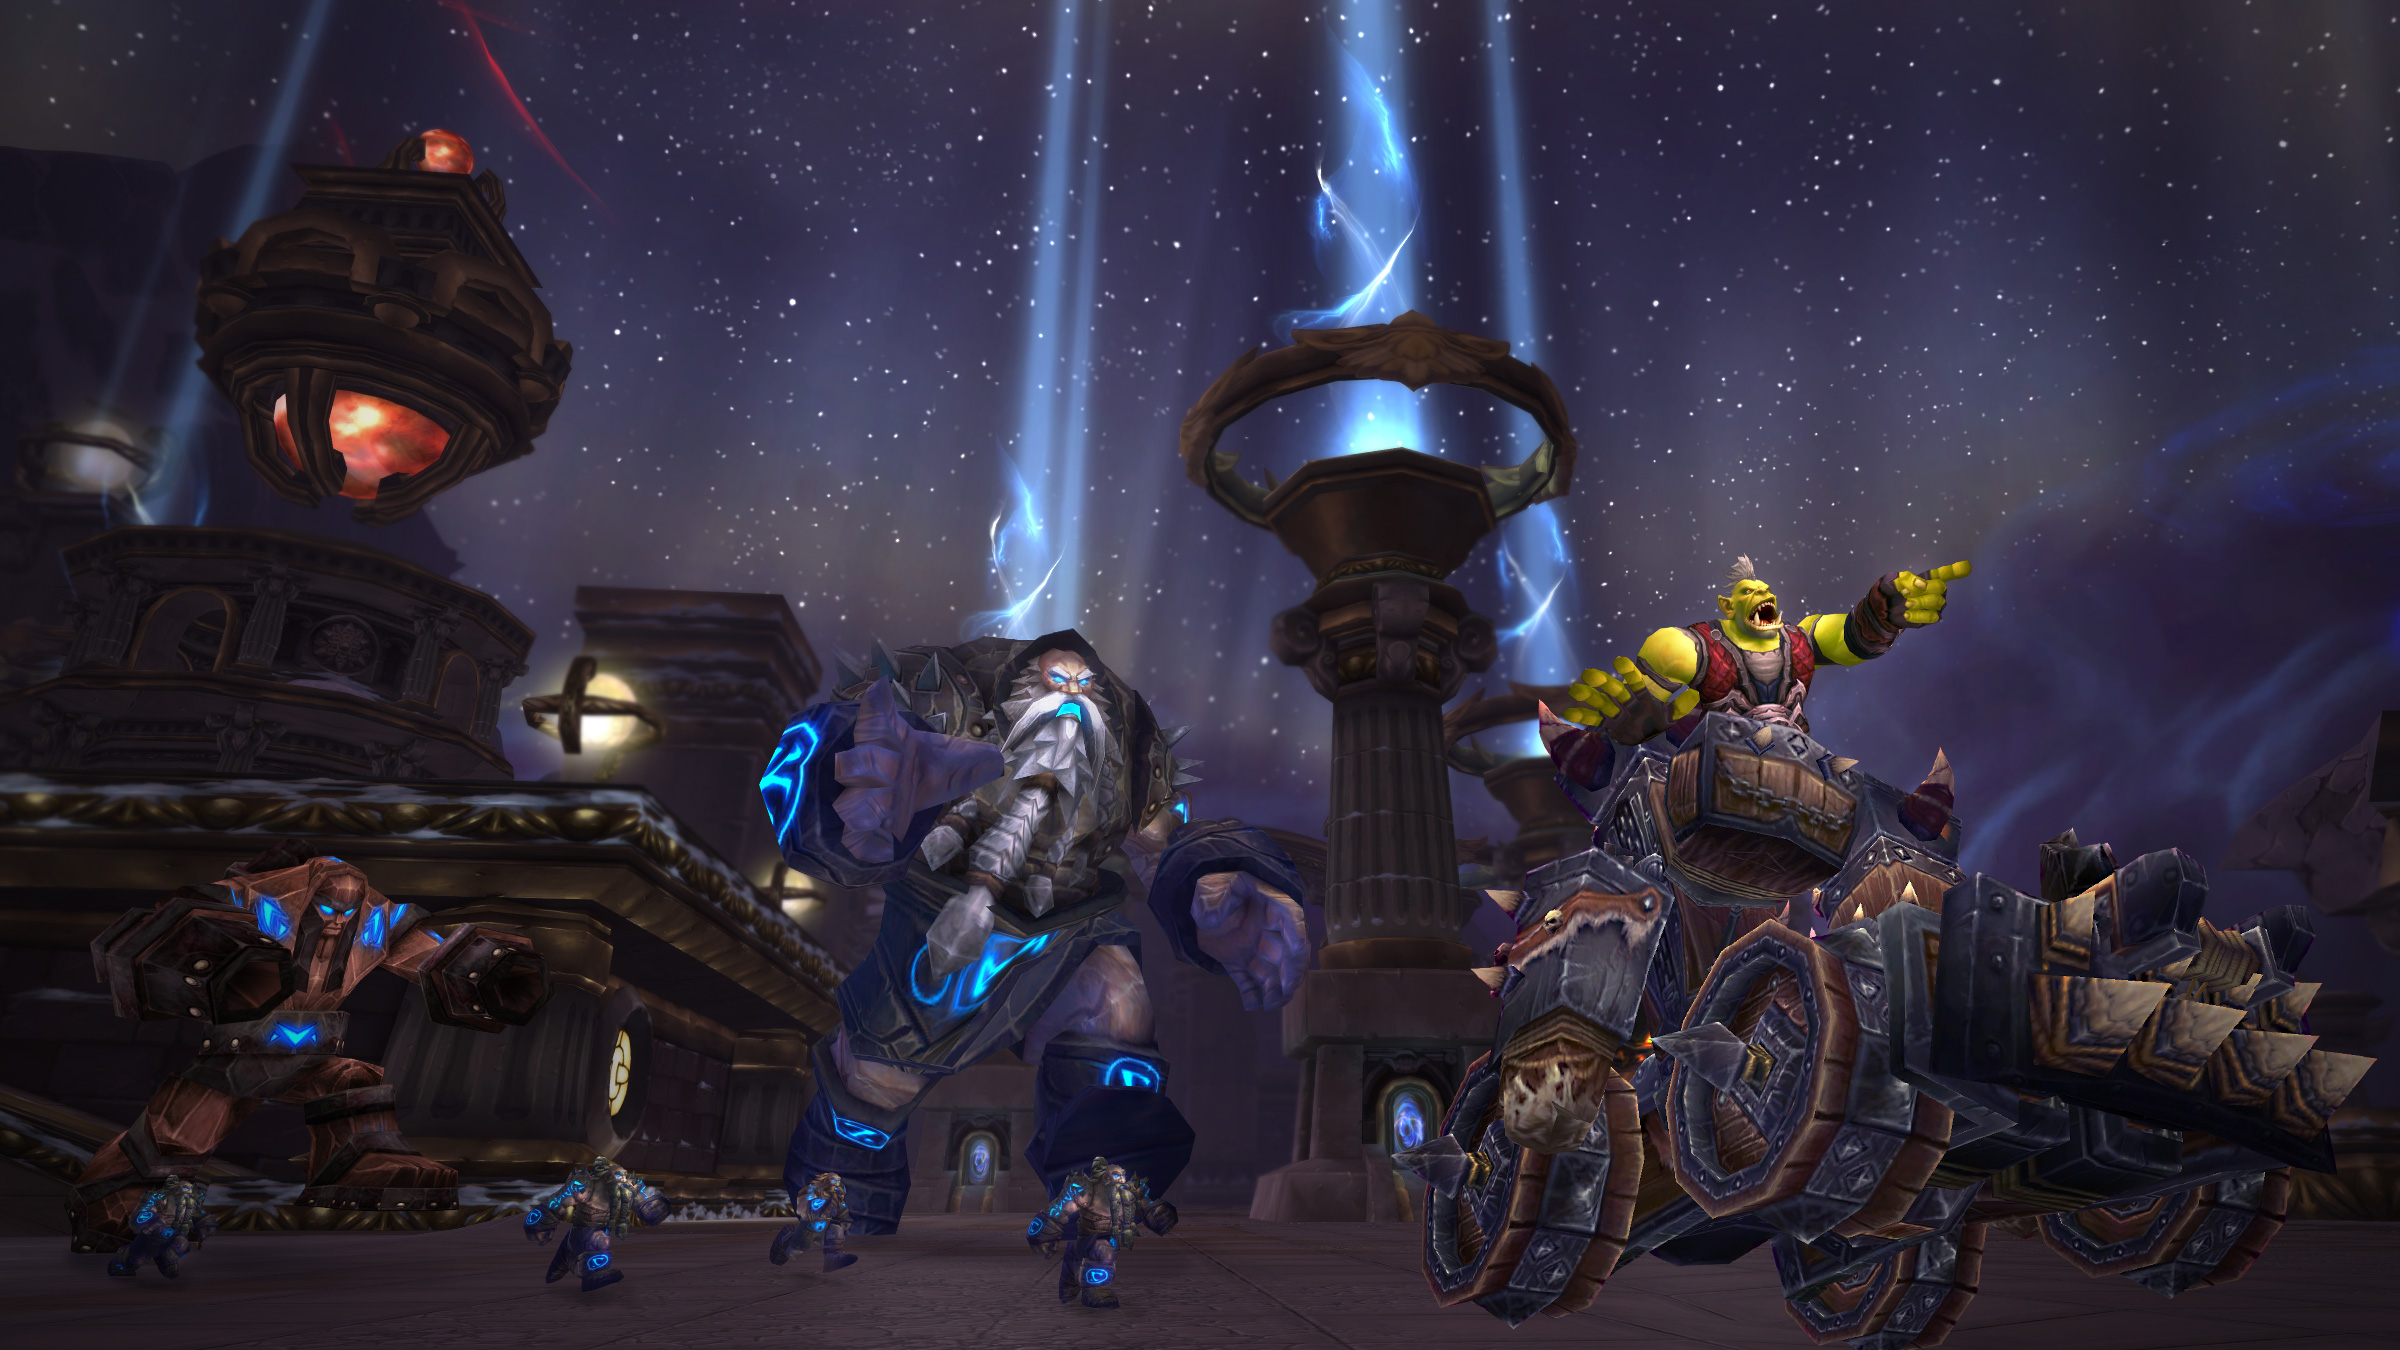 Wrath of the Lich King Timewalking Returns—June 30-July 7